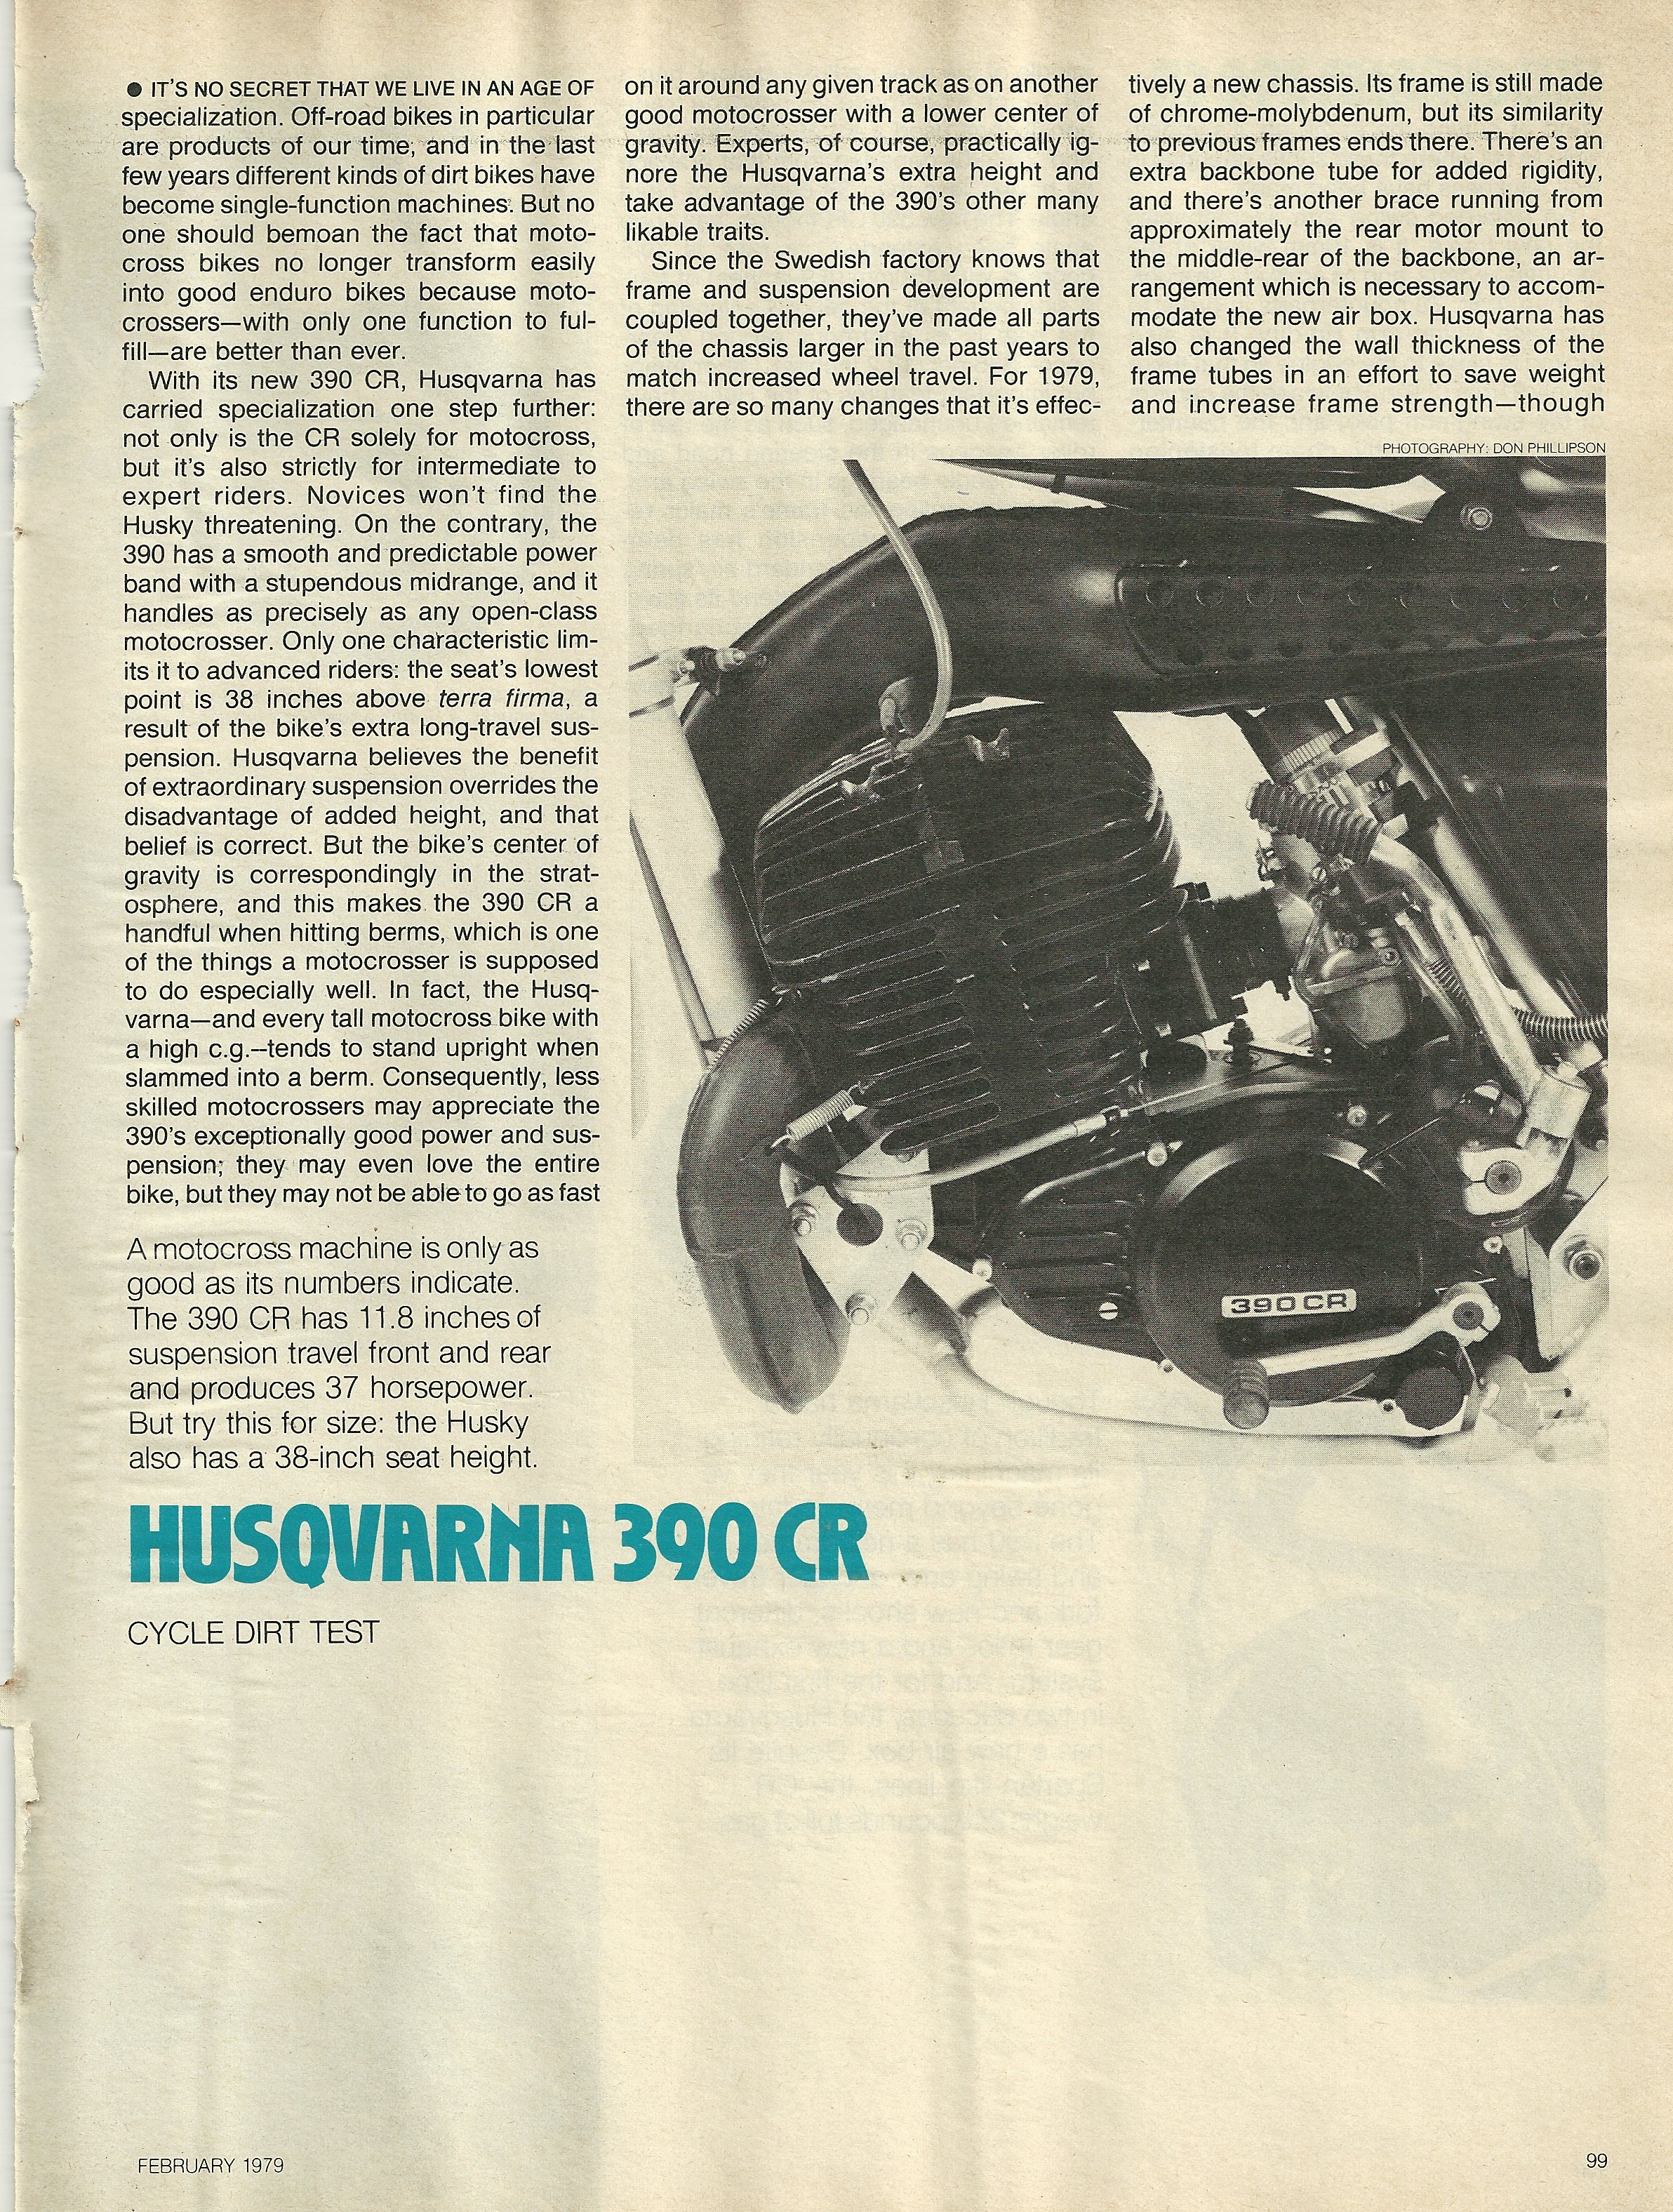 1979 Husqvarna 390 CR off road test 2.JPG